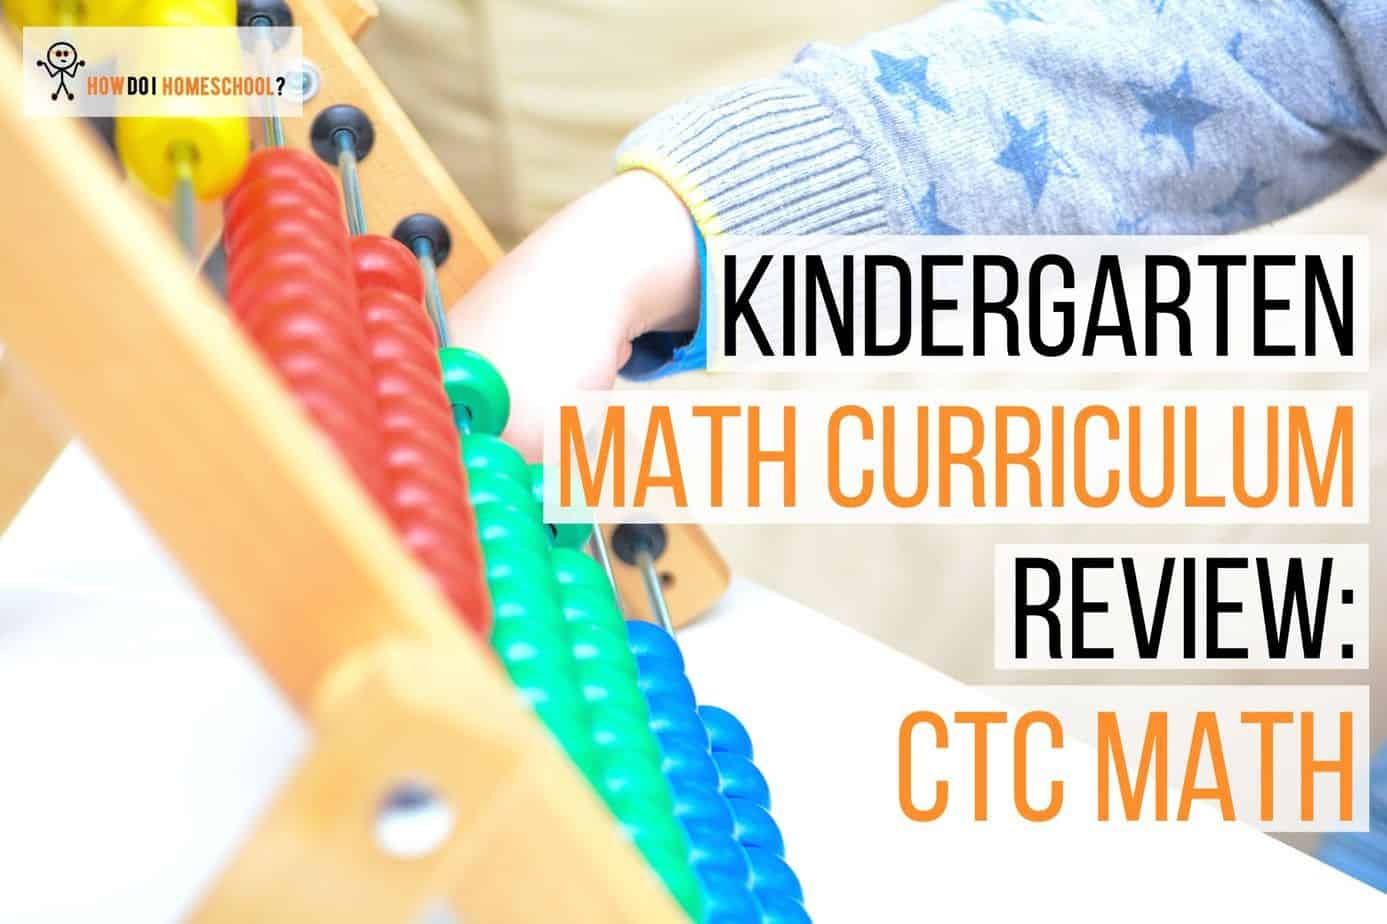 CTC Math Review: Kindergarten Curriculum